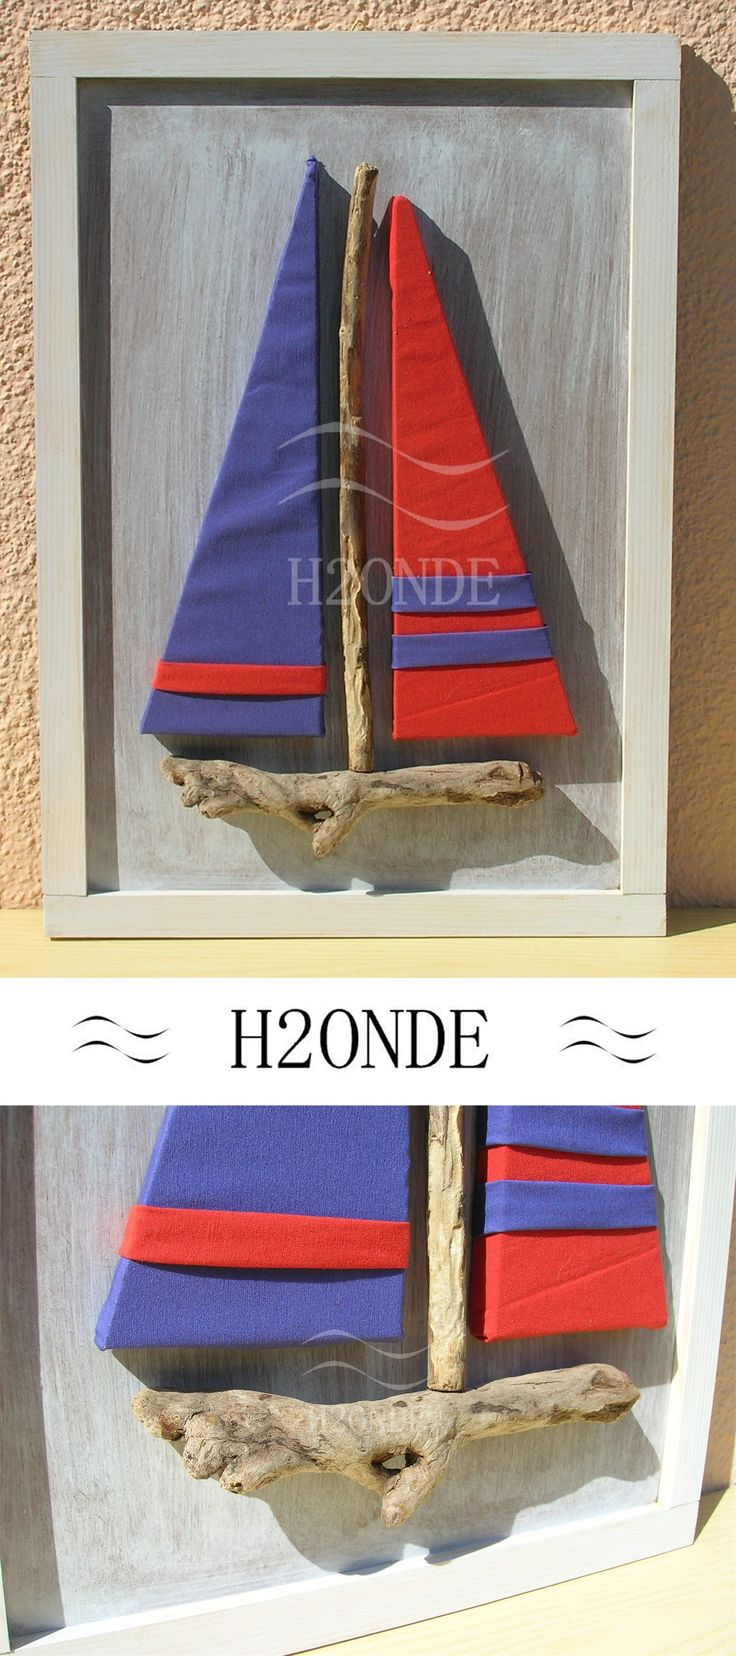 Evelyne home interiors interior and exterior decoration velas - 3d Coastal Sailboat Boat Nautical Wall Art Decor Framed Home Driftwood Wood Hanging Decoration Beach Modern Ocean Shabby Chic Cottage Gift